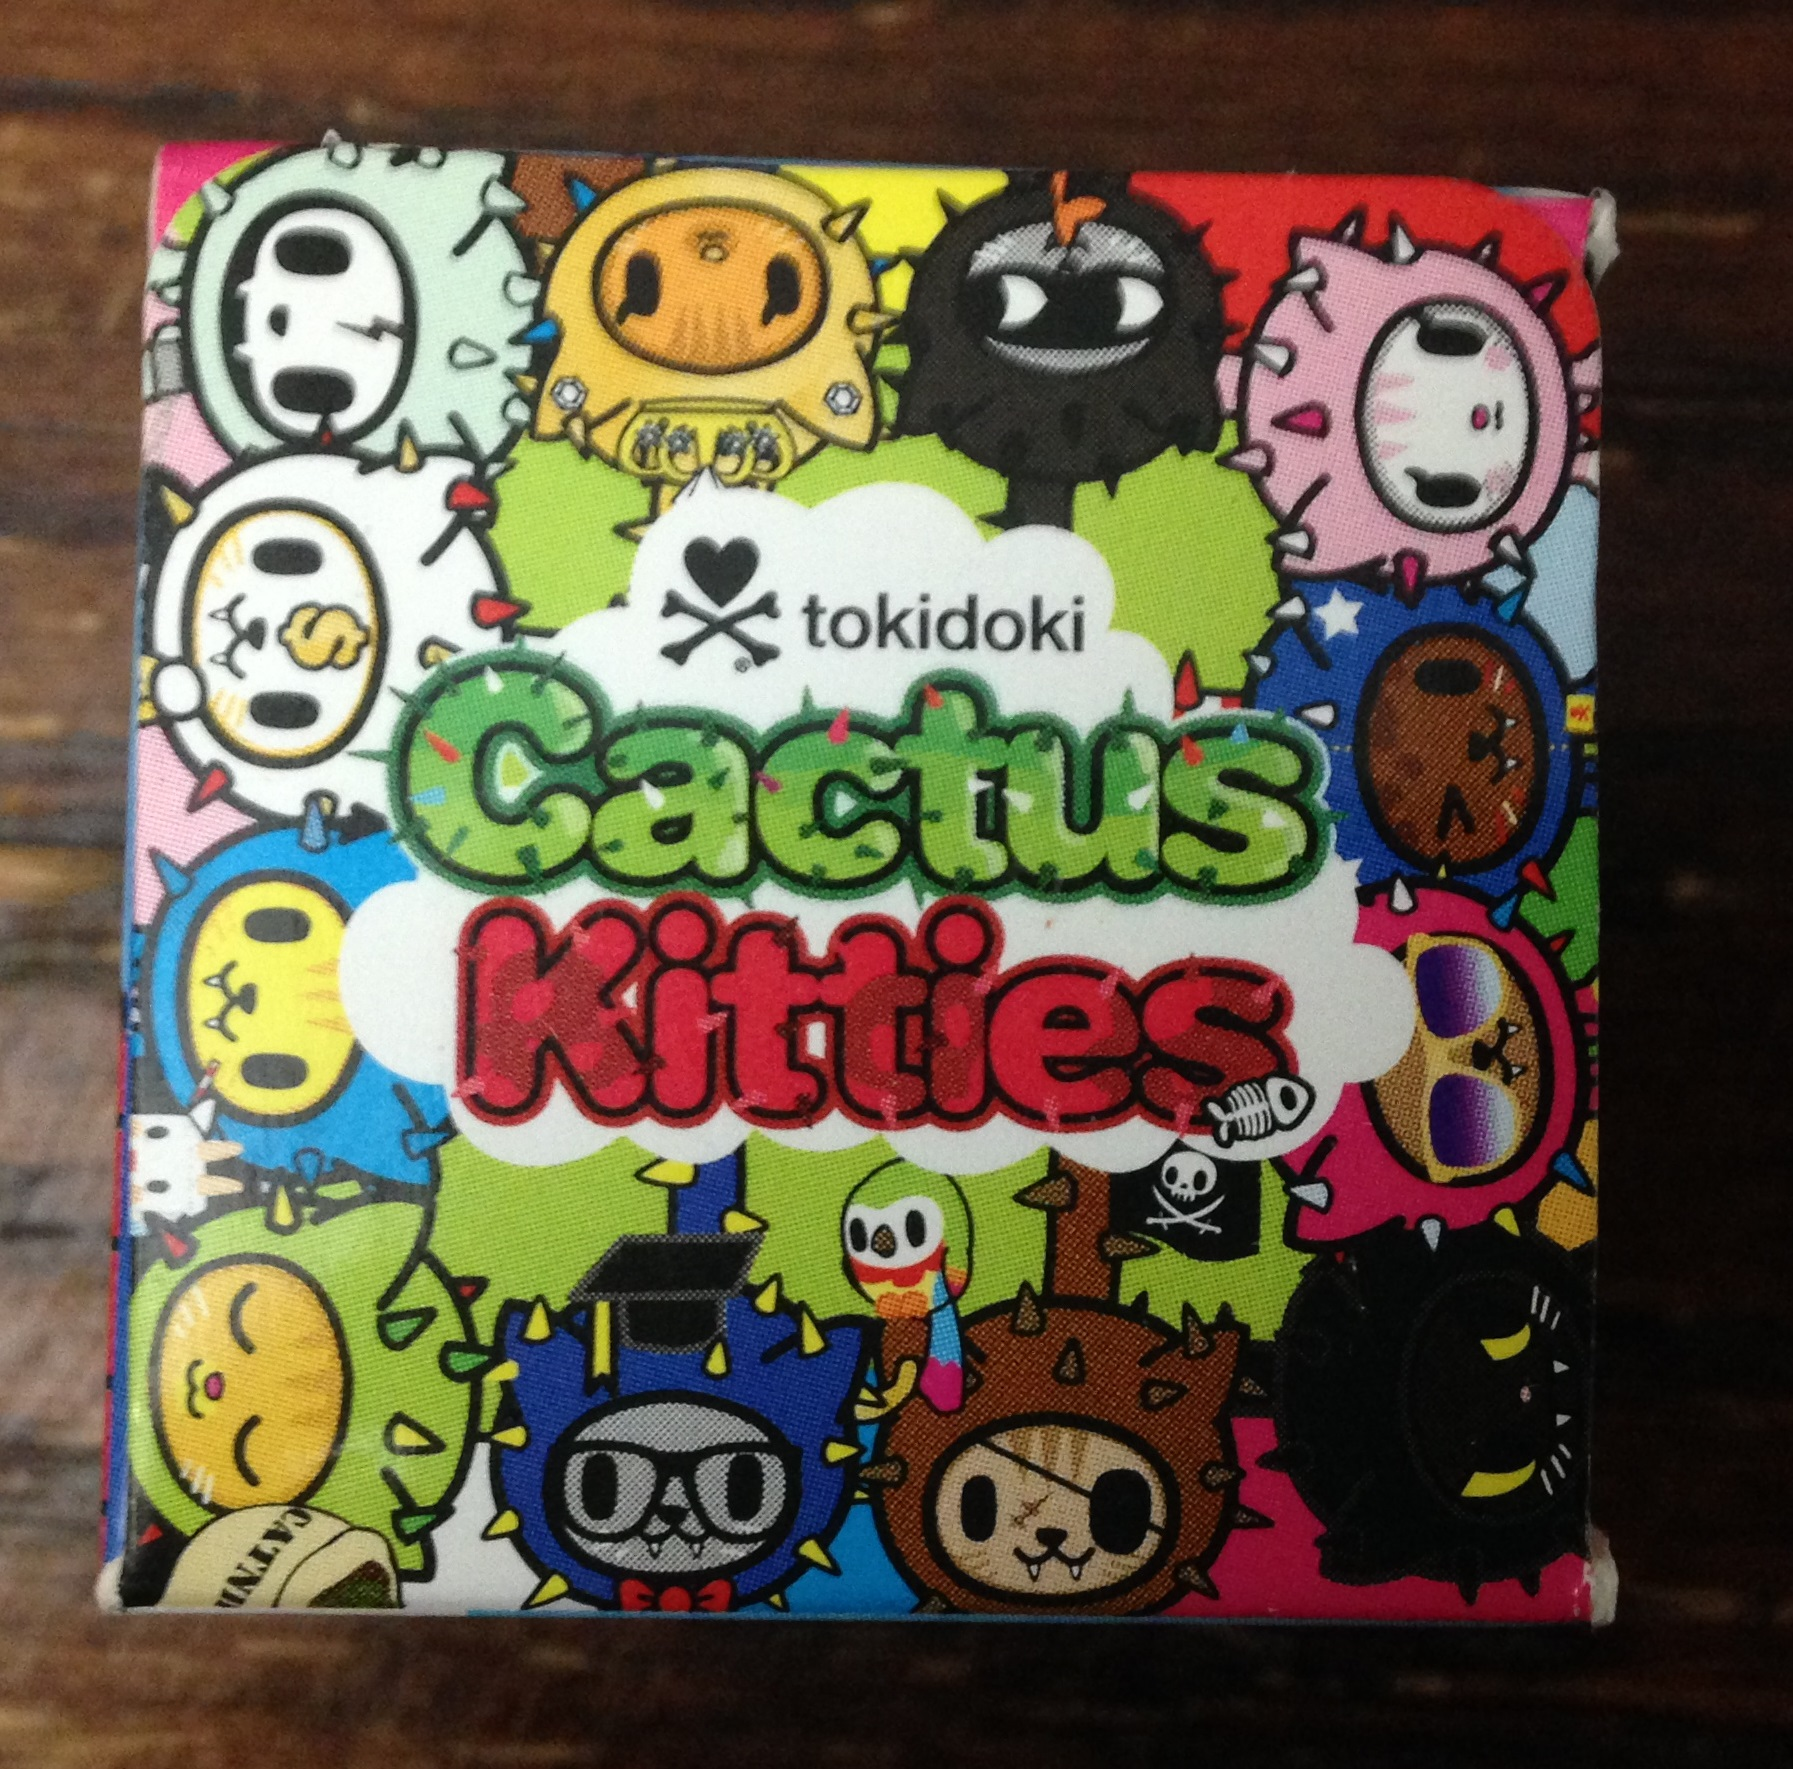 tokidoki-cactus-kitties-blind-box